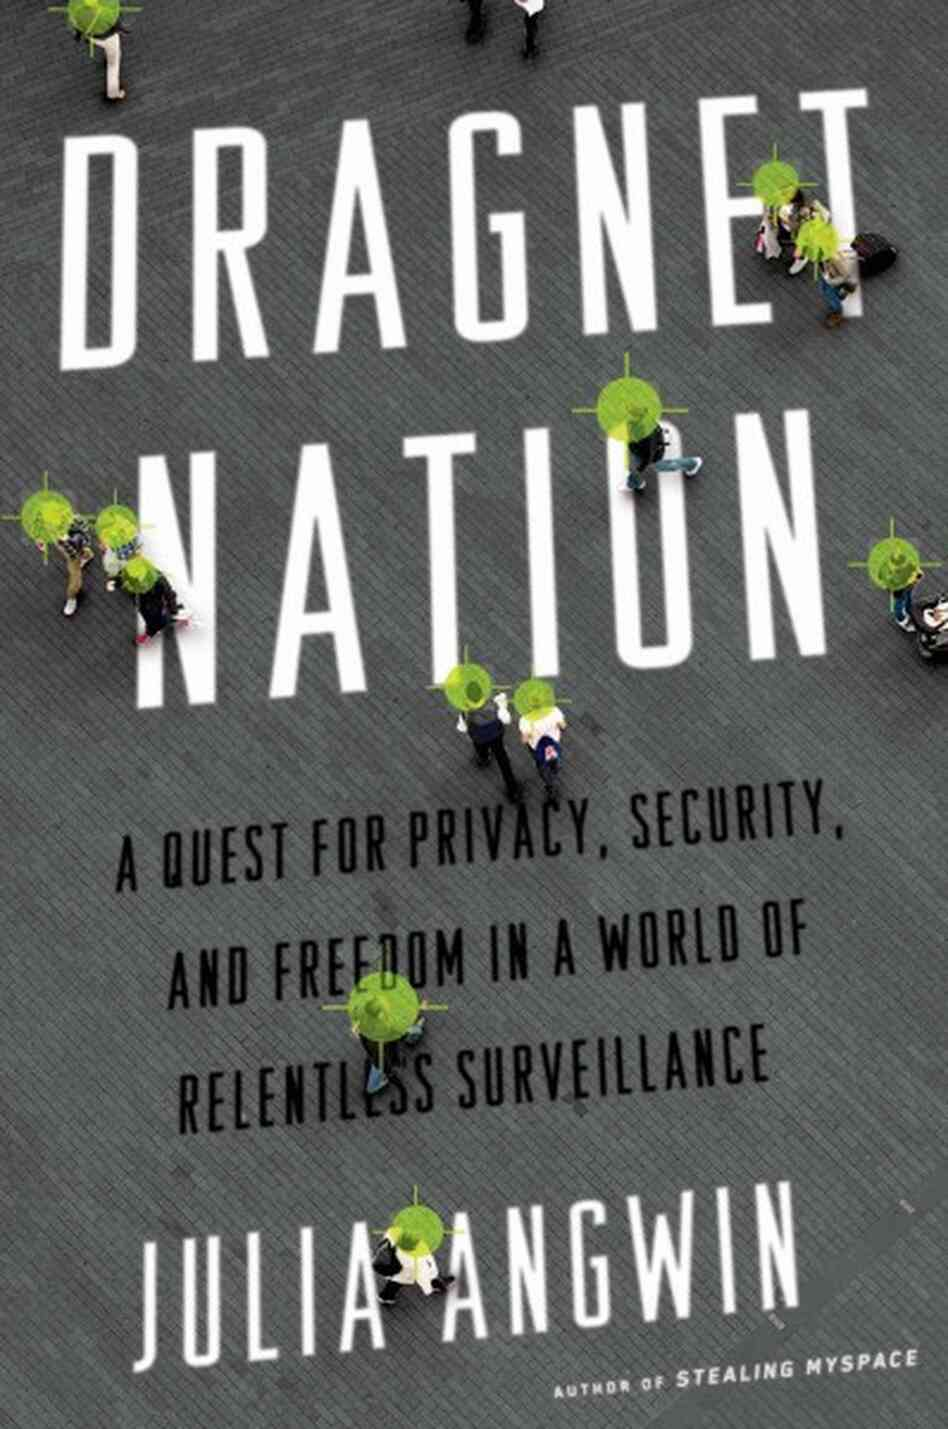 Angwin – Dragnet Nation: A Quest for Privacy, Security and Freedom in a World of Relentless Surveillance